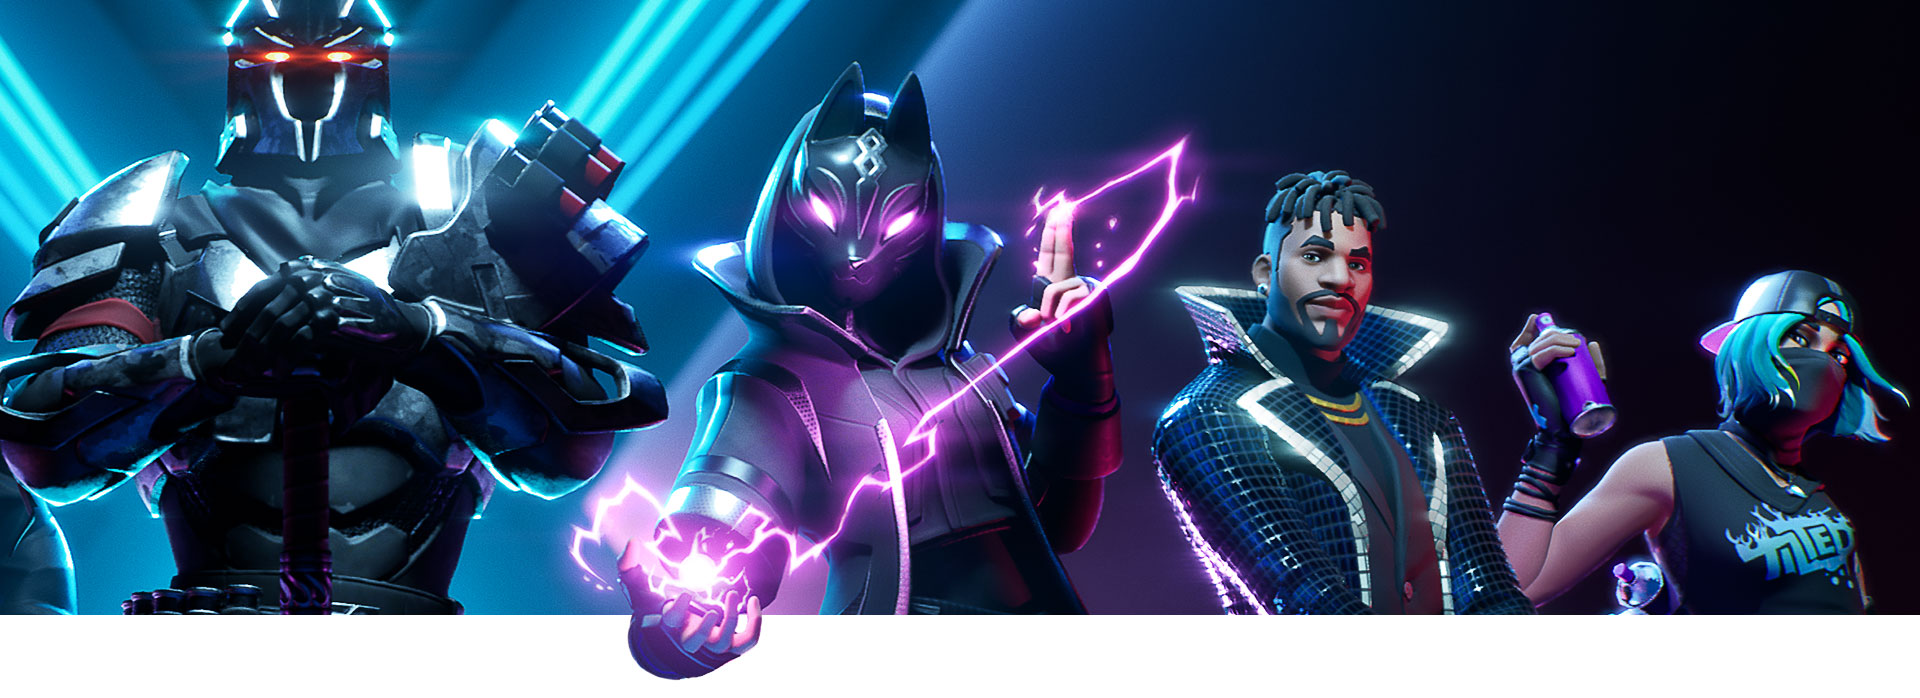 Four Fortnite characters posing